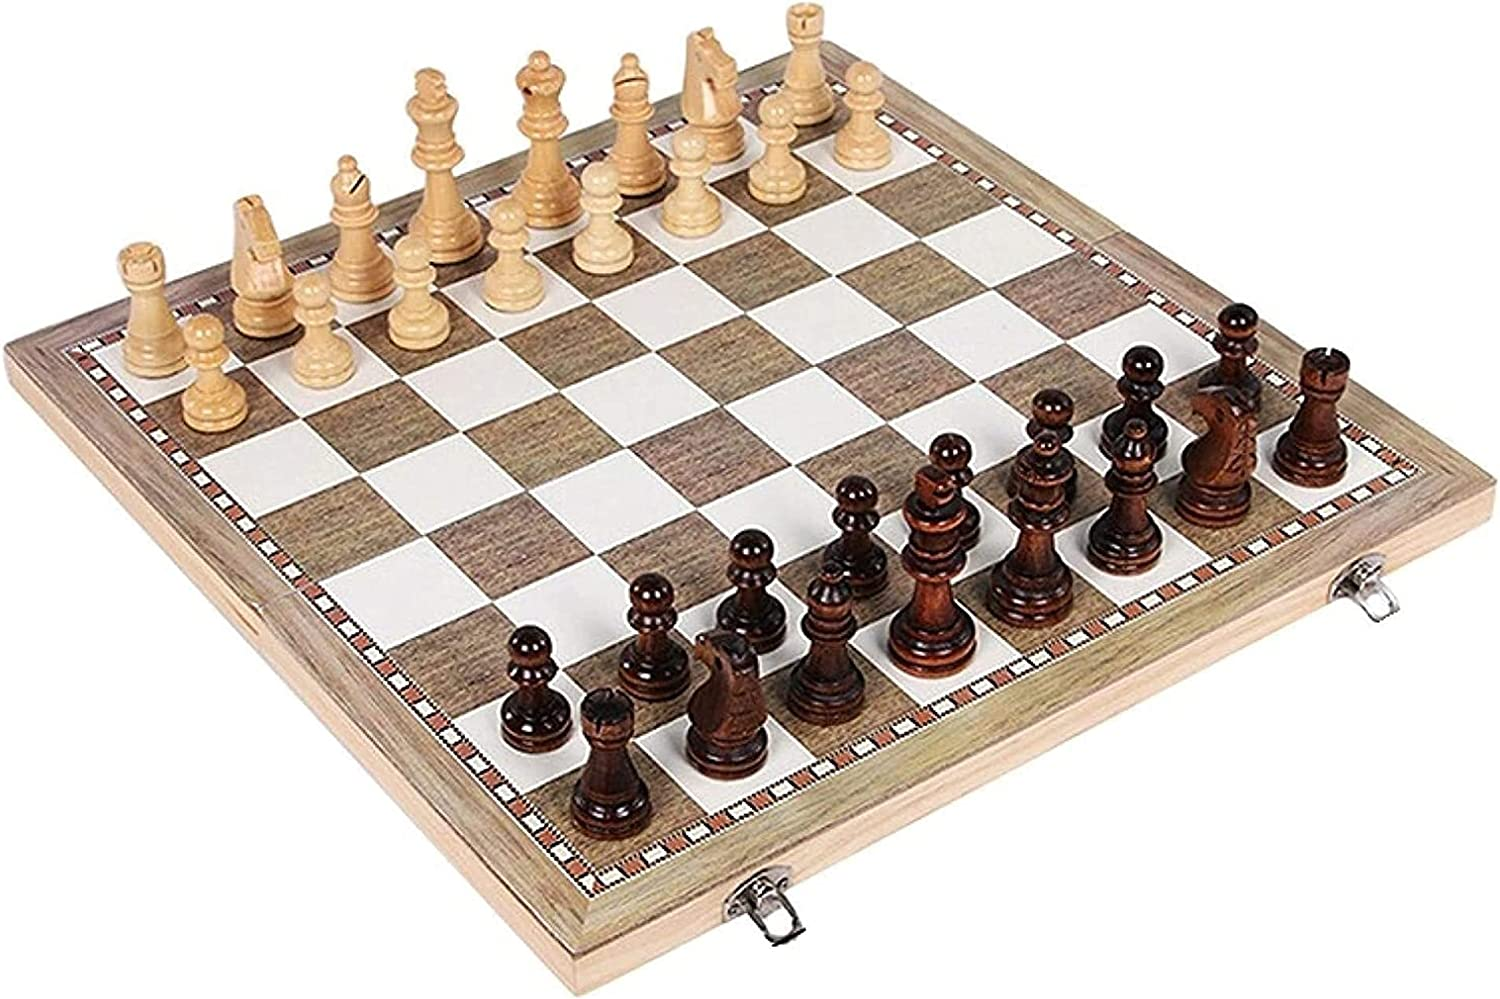 MTCWD Handmade Wooden Max 67% OFF supreme Chess Int Foldable Set Portable